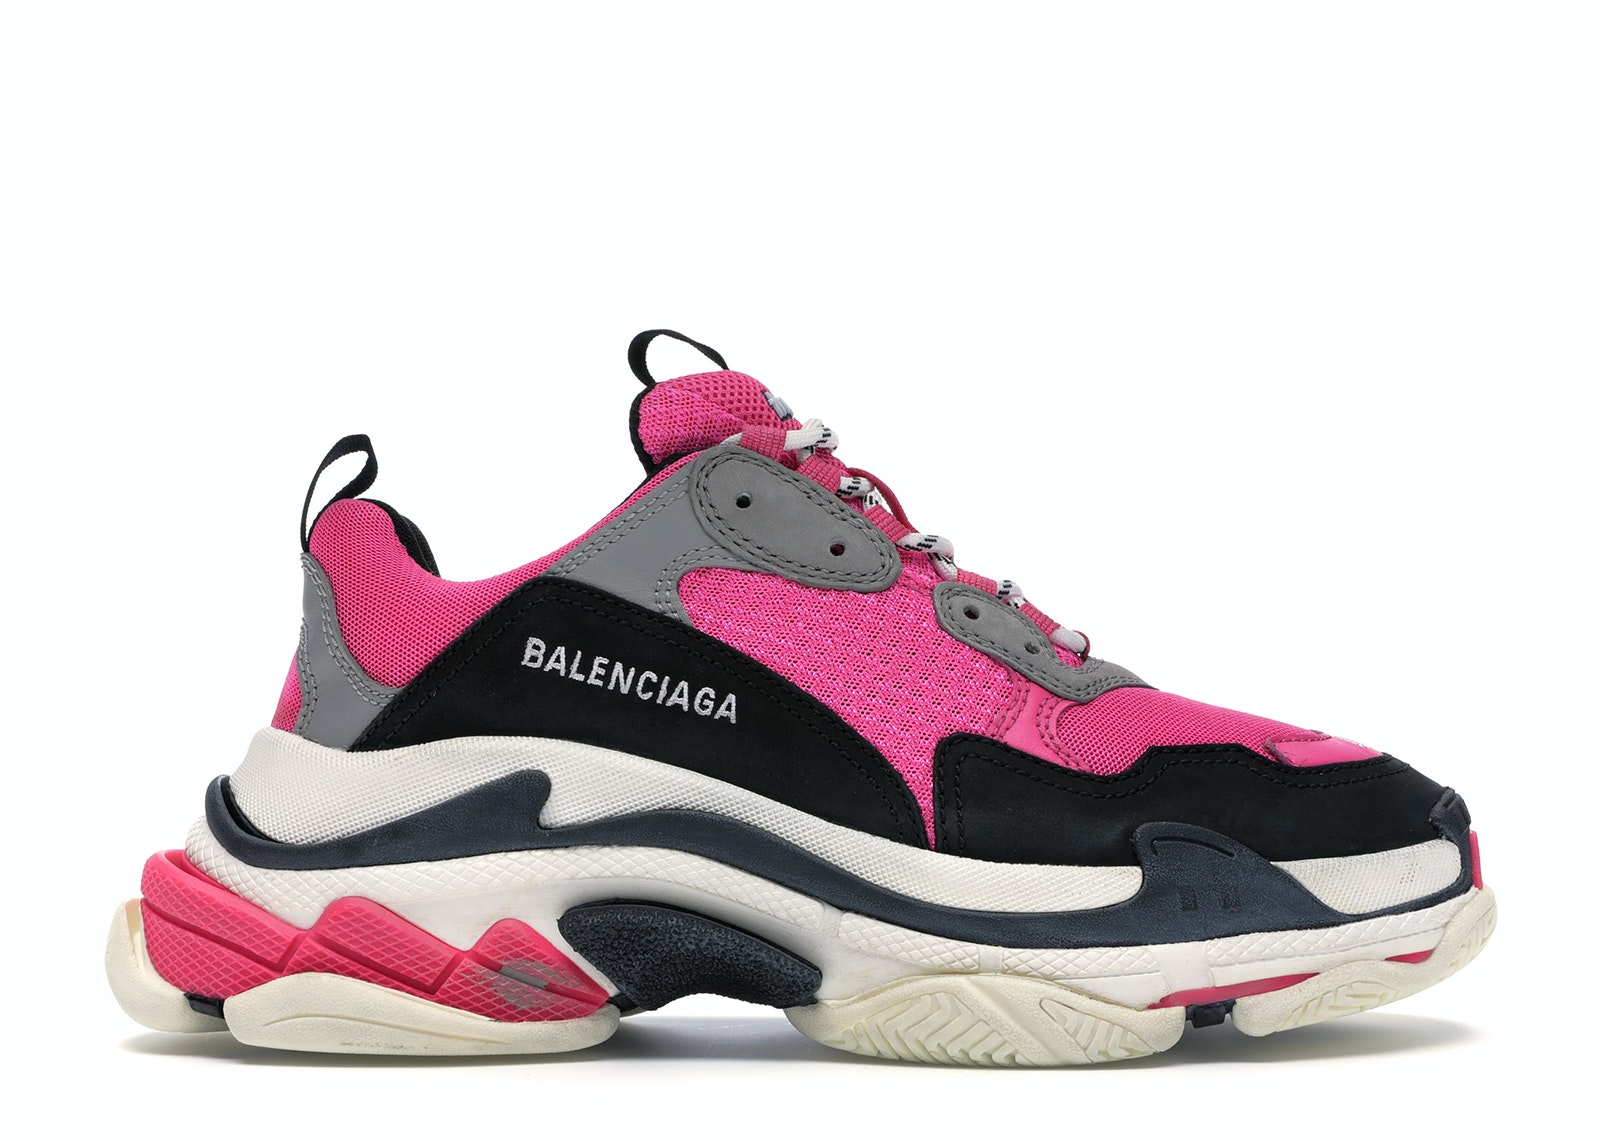 Triple s trainers Balenciaga Pink size 40 EU in Polyester